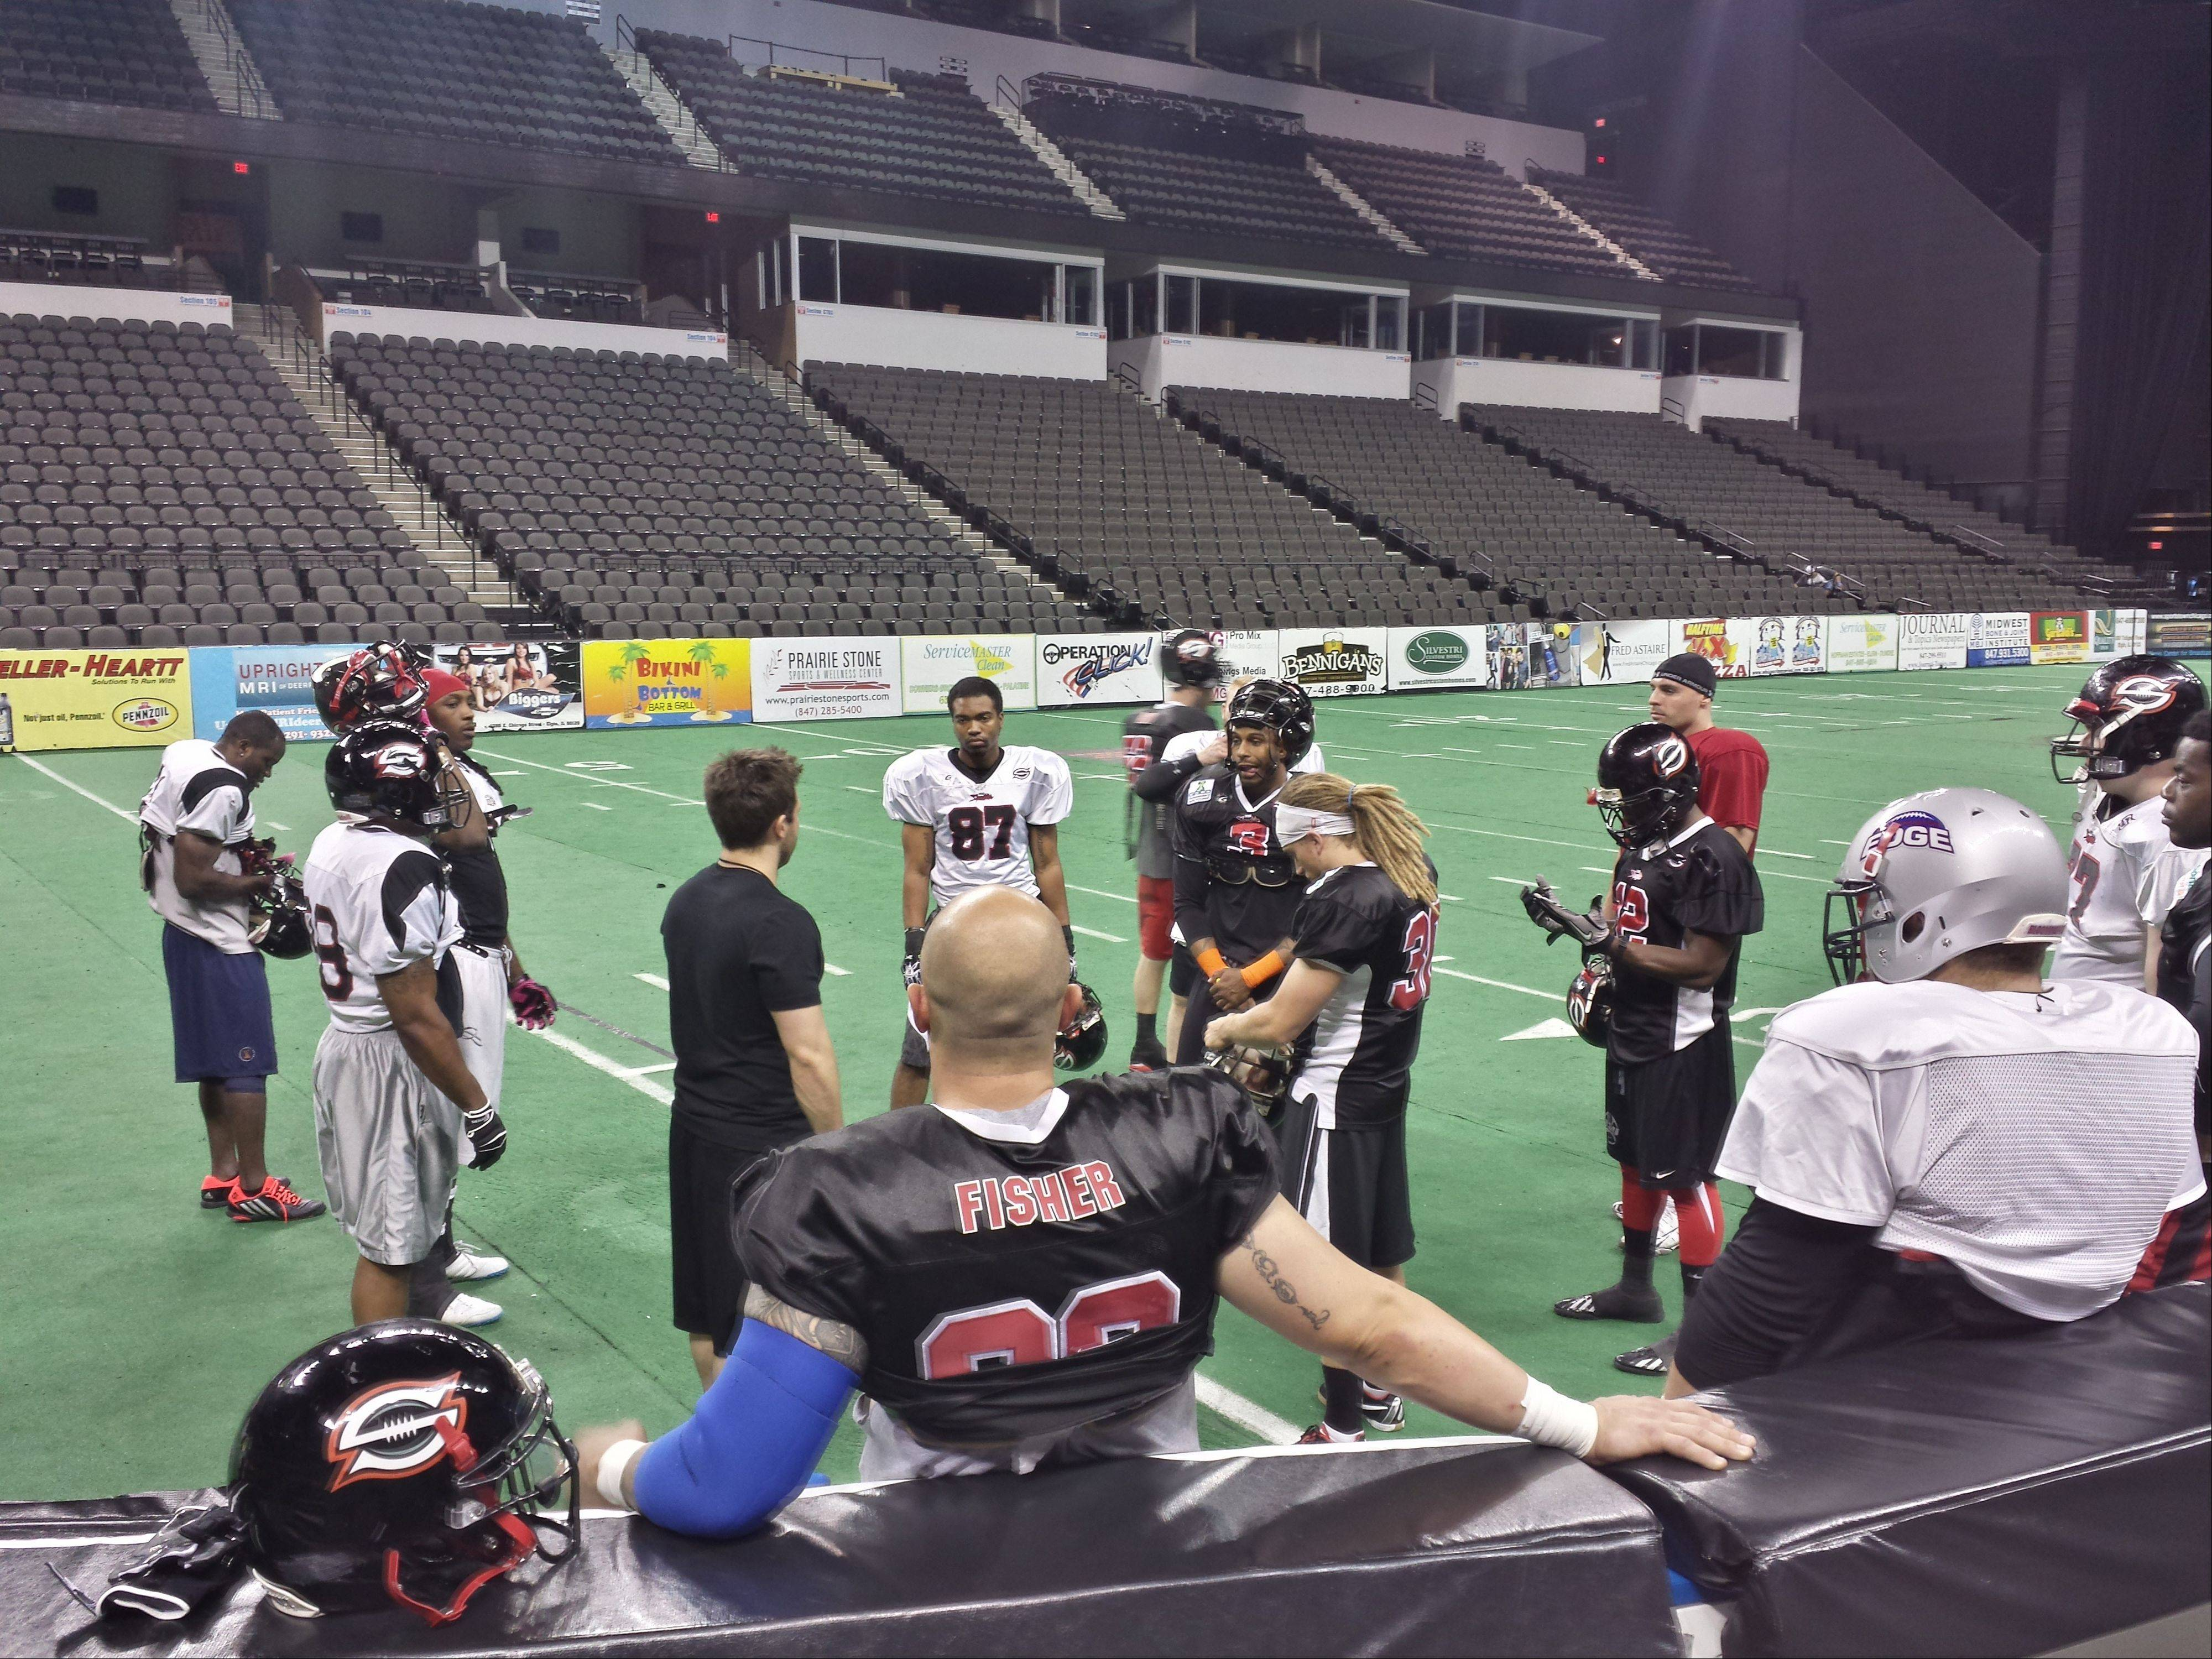 The Chicago Slaughter meet up and listen to what offensive coordinator Pat Pistorio has planned for practice before the team�s last home game. The Slaughter host the Green Bay Blizzard on Friday at 7:35 p.m. at Sears Centre Arena.